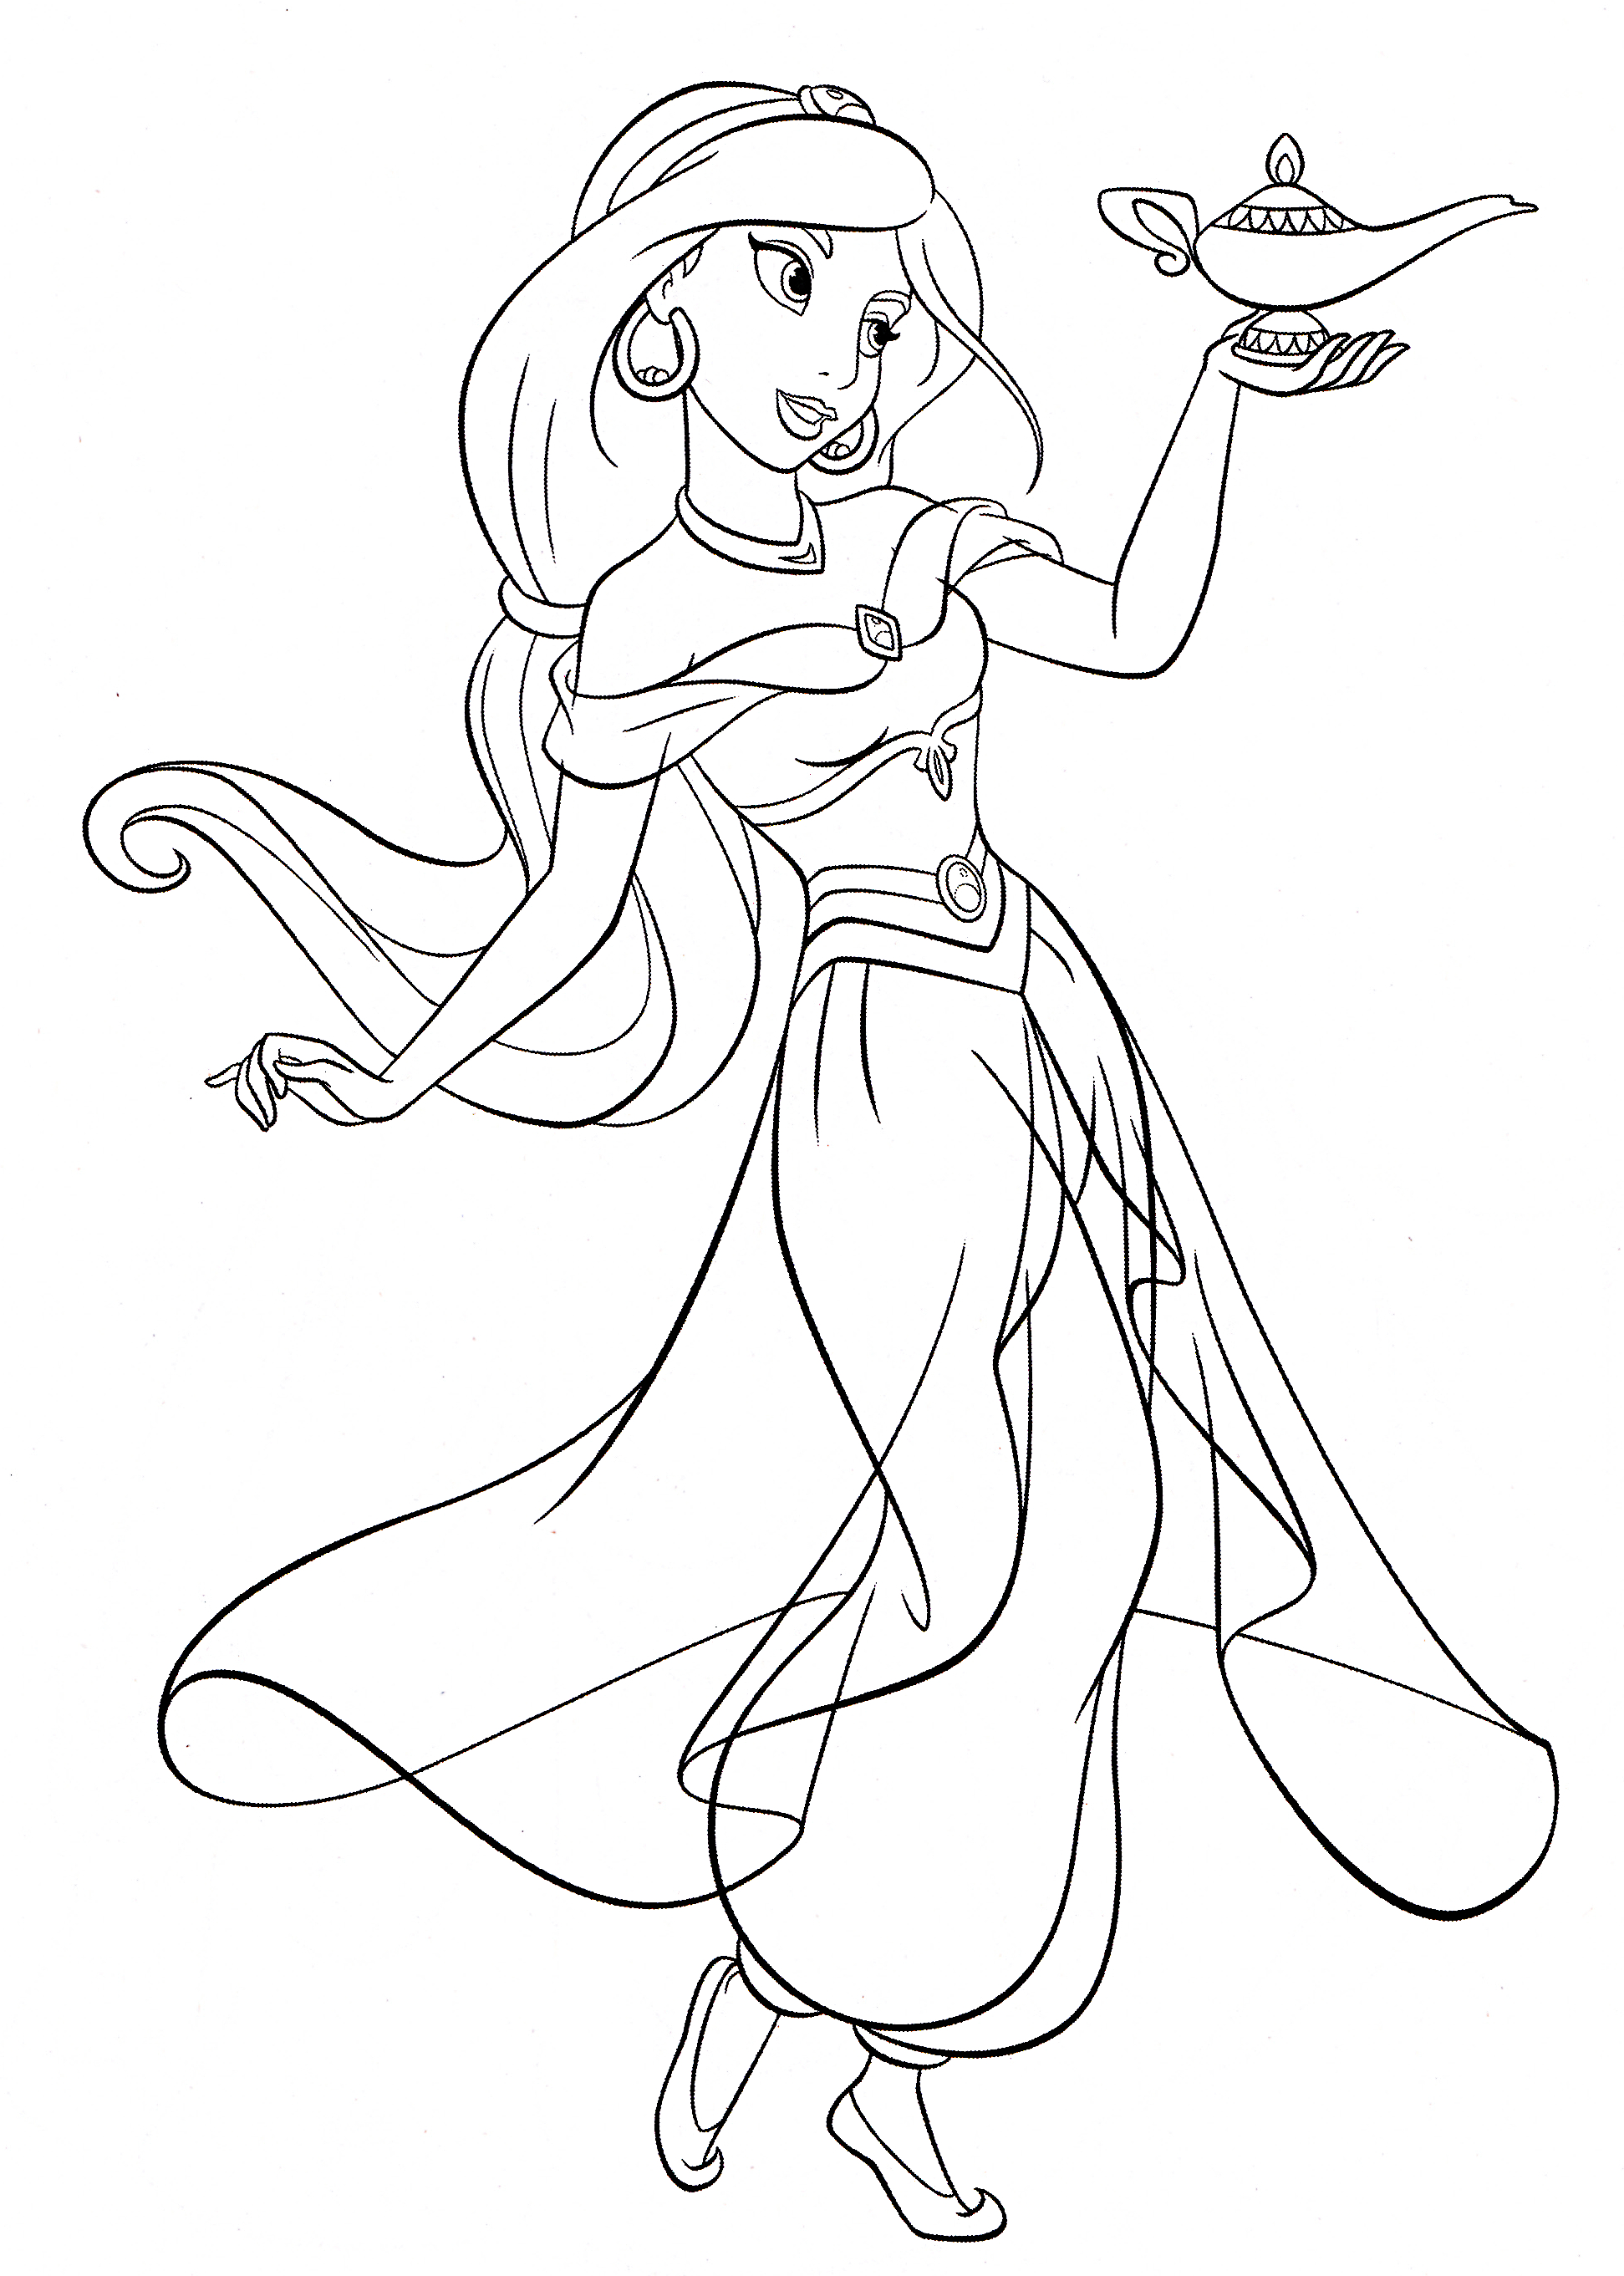 Jasmine Coloring Pages To Print Archives - Free Coloring Pages For - Free Printable Princess Jasmine Coloring Pages